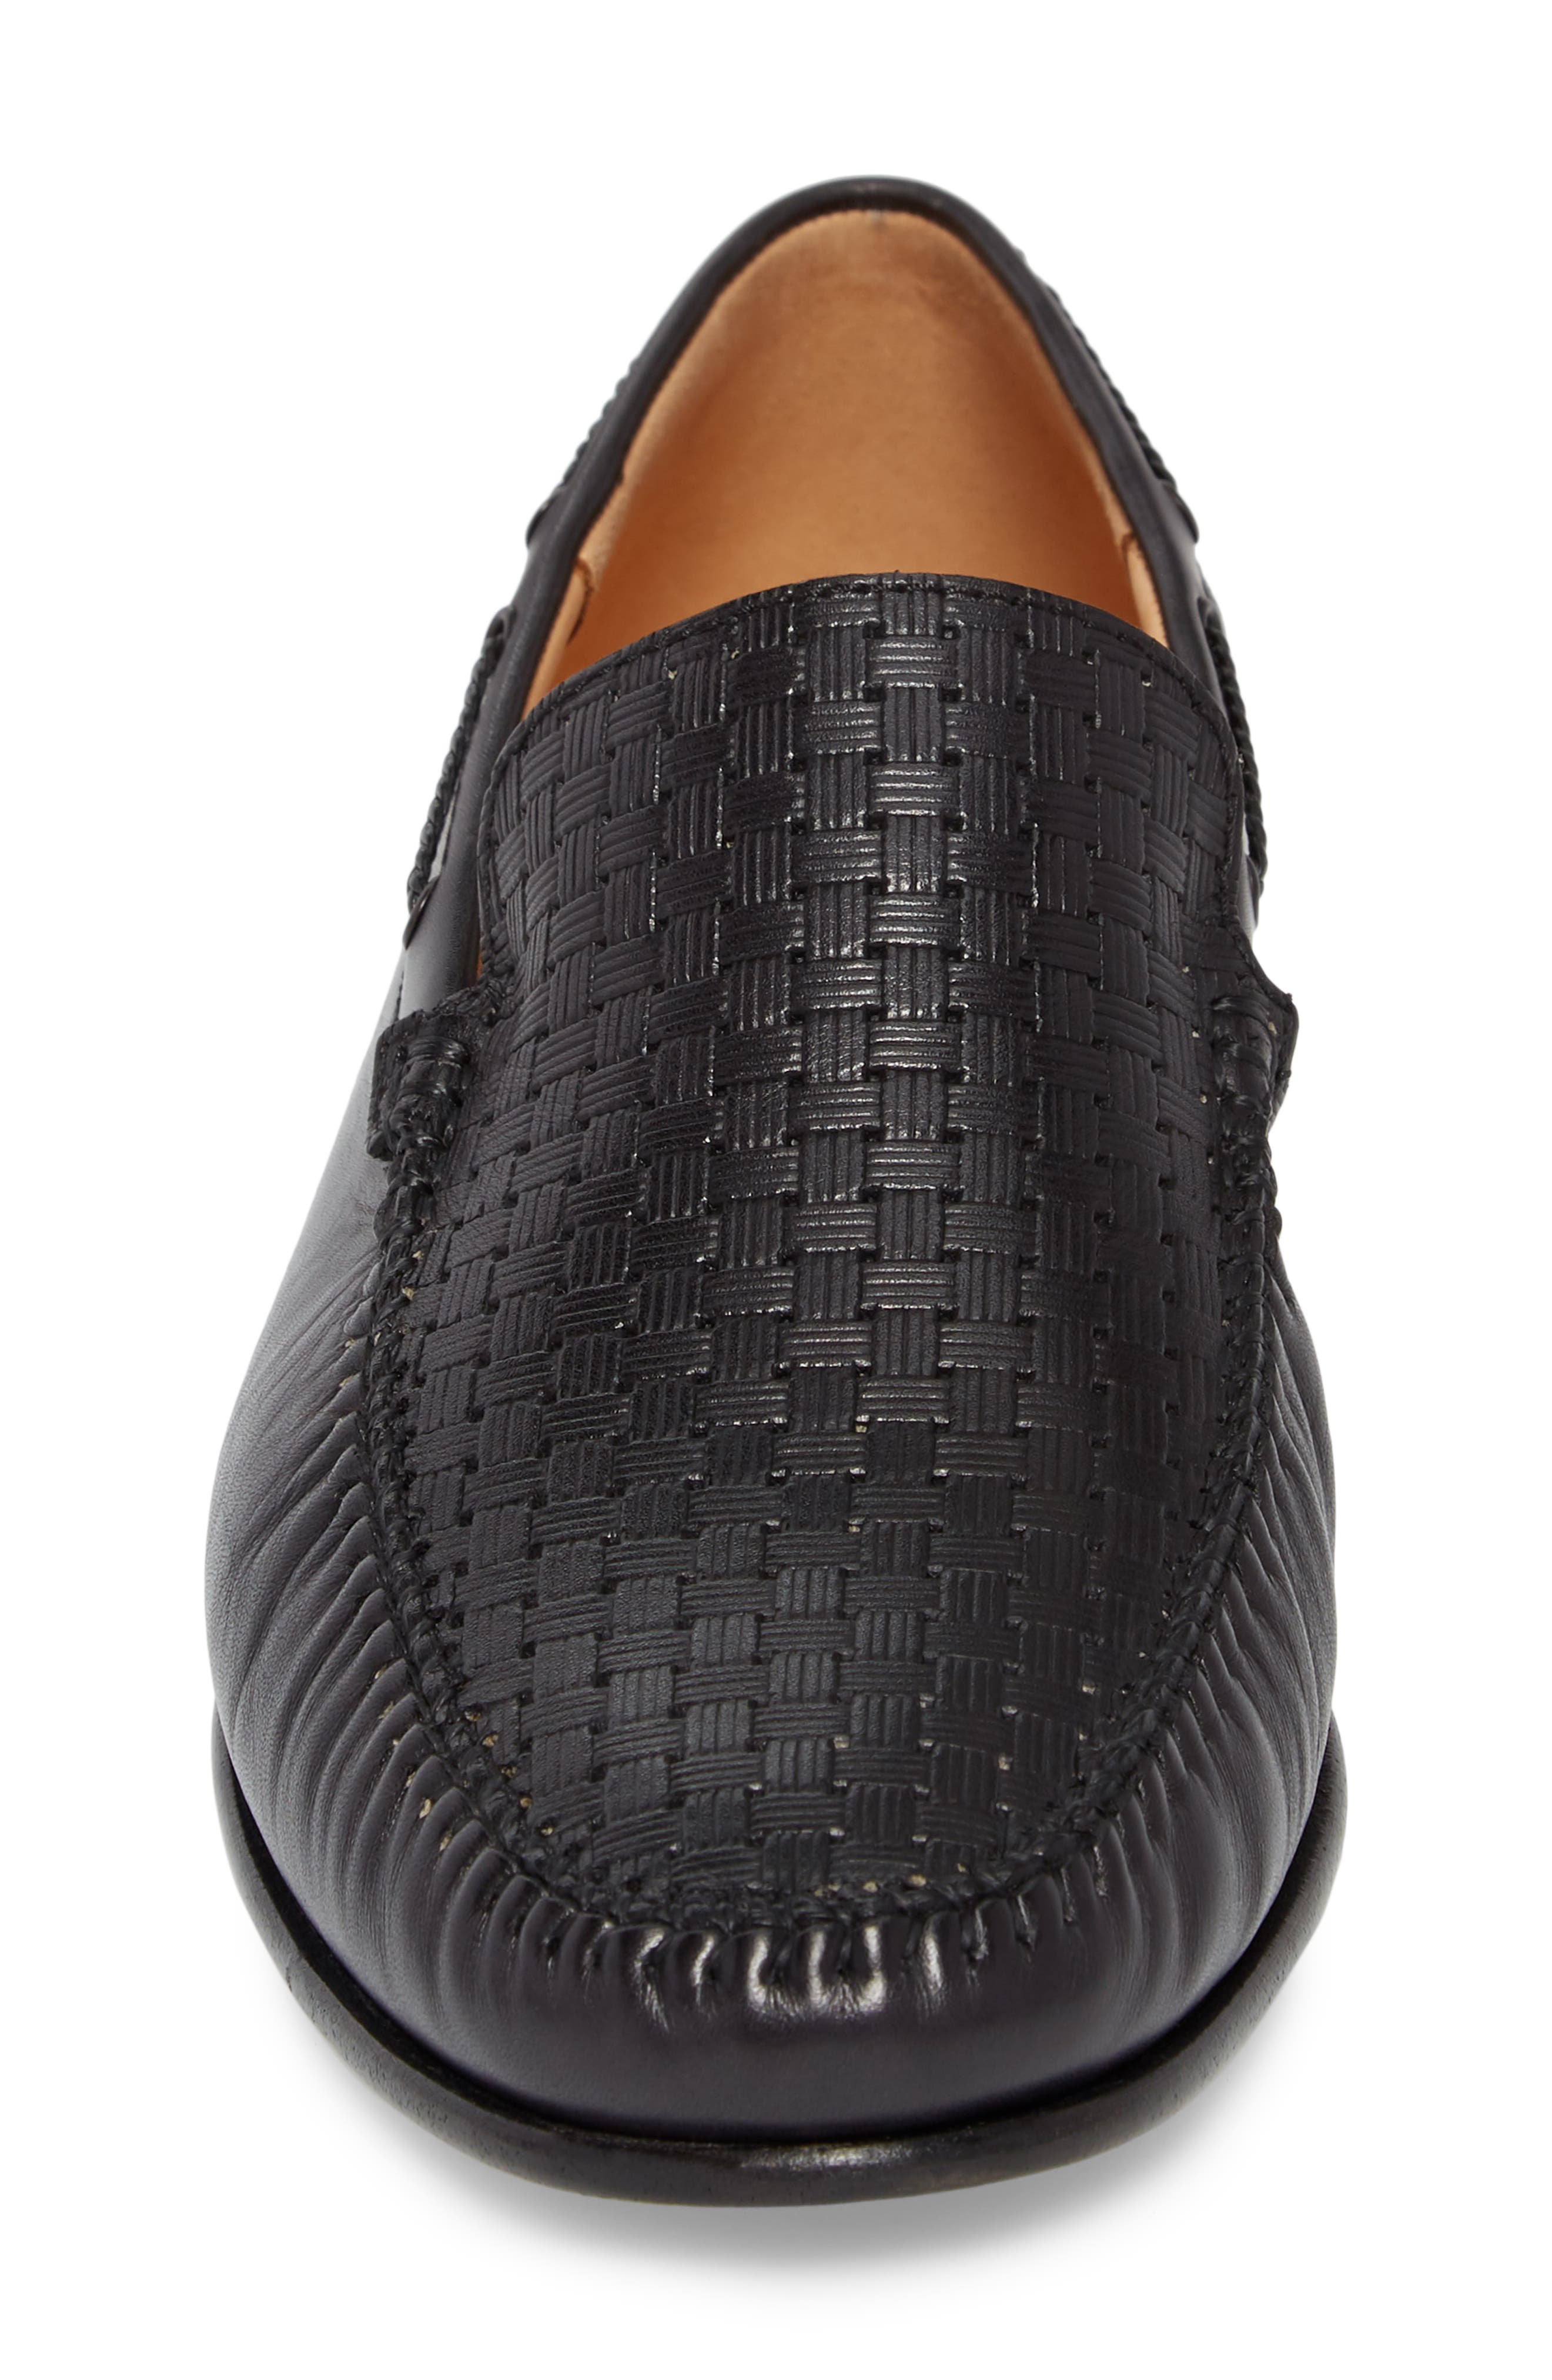 Jano Embossed Moc-Toe Loafer,                             Alternate thumbnail 4, color,                             BLACK LEATHER